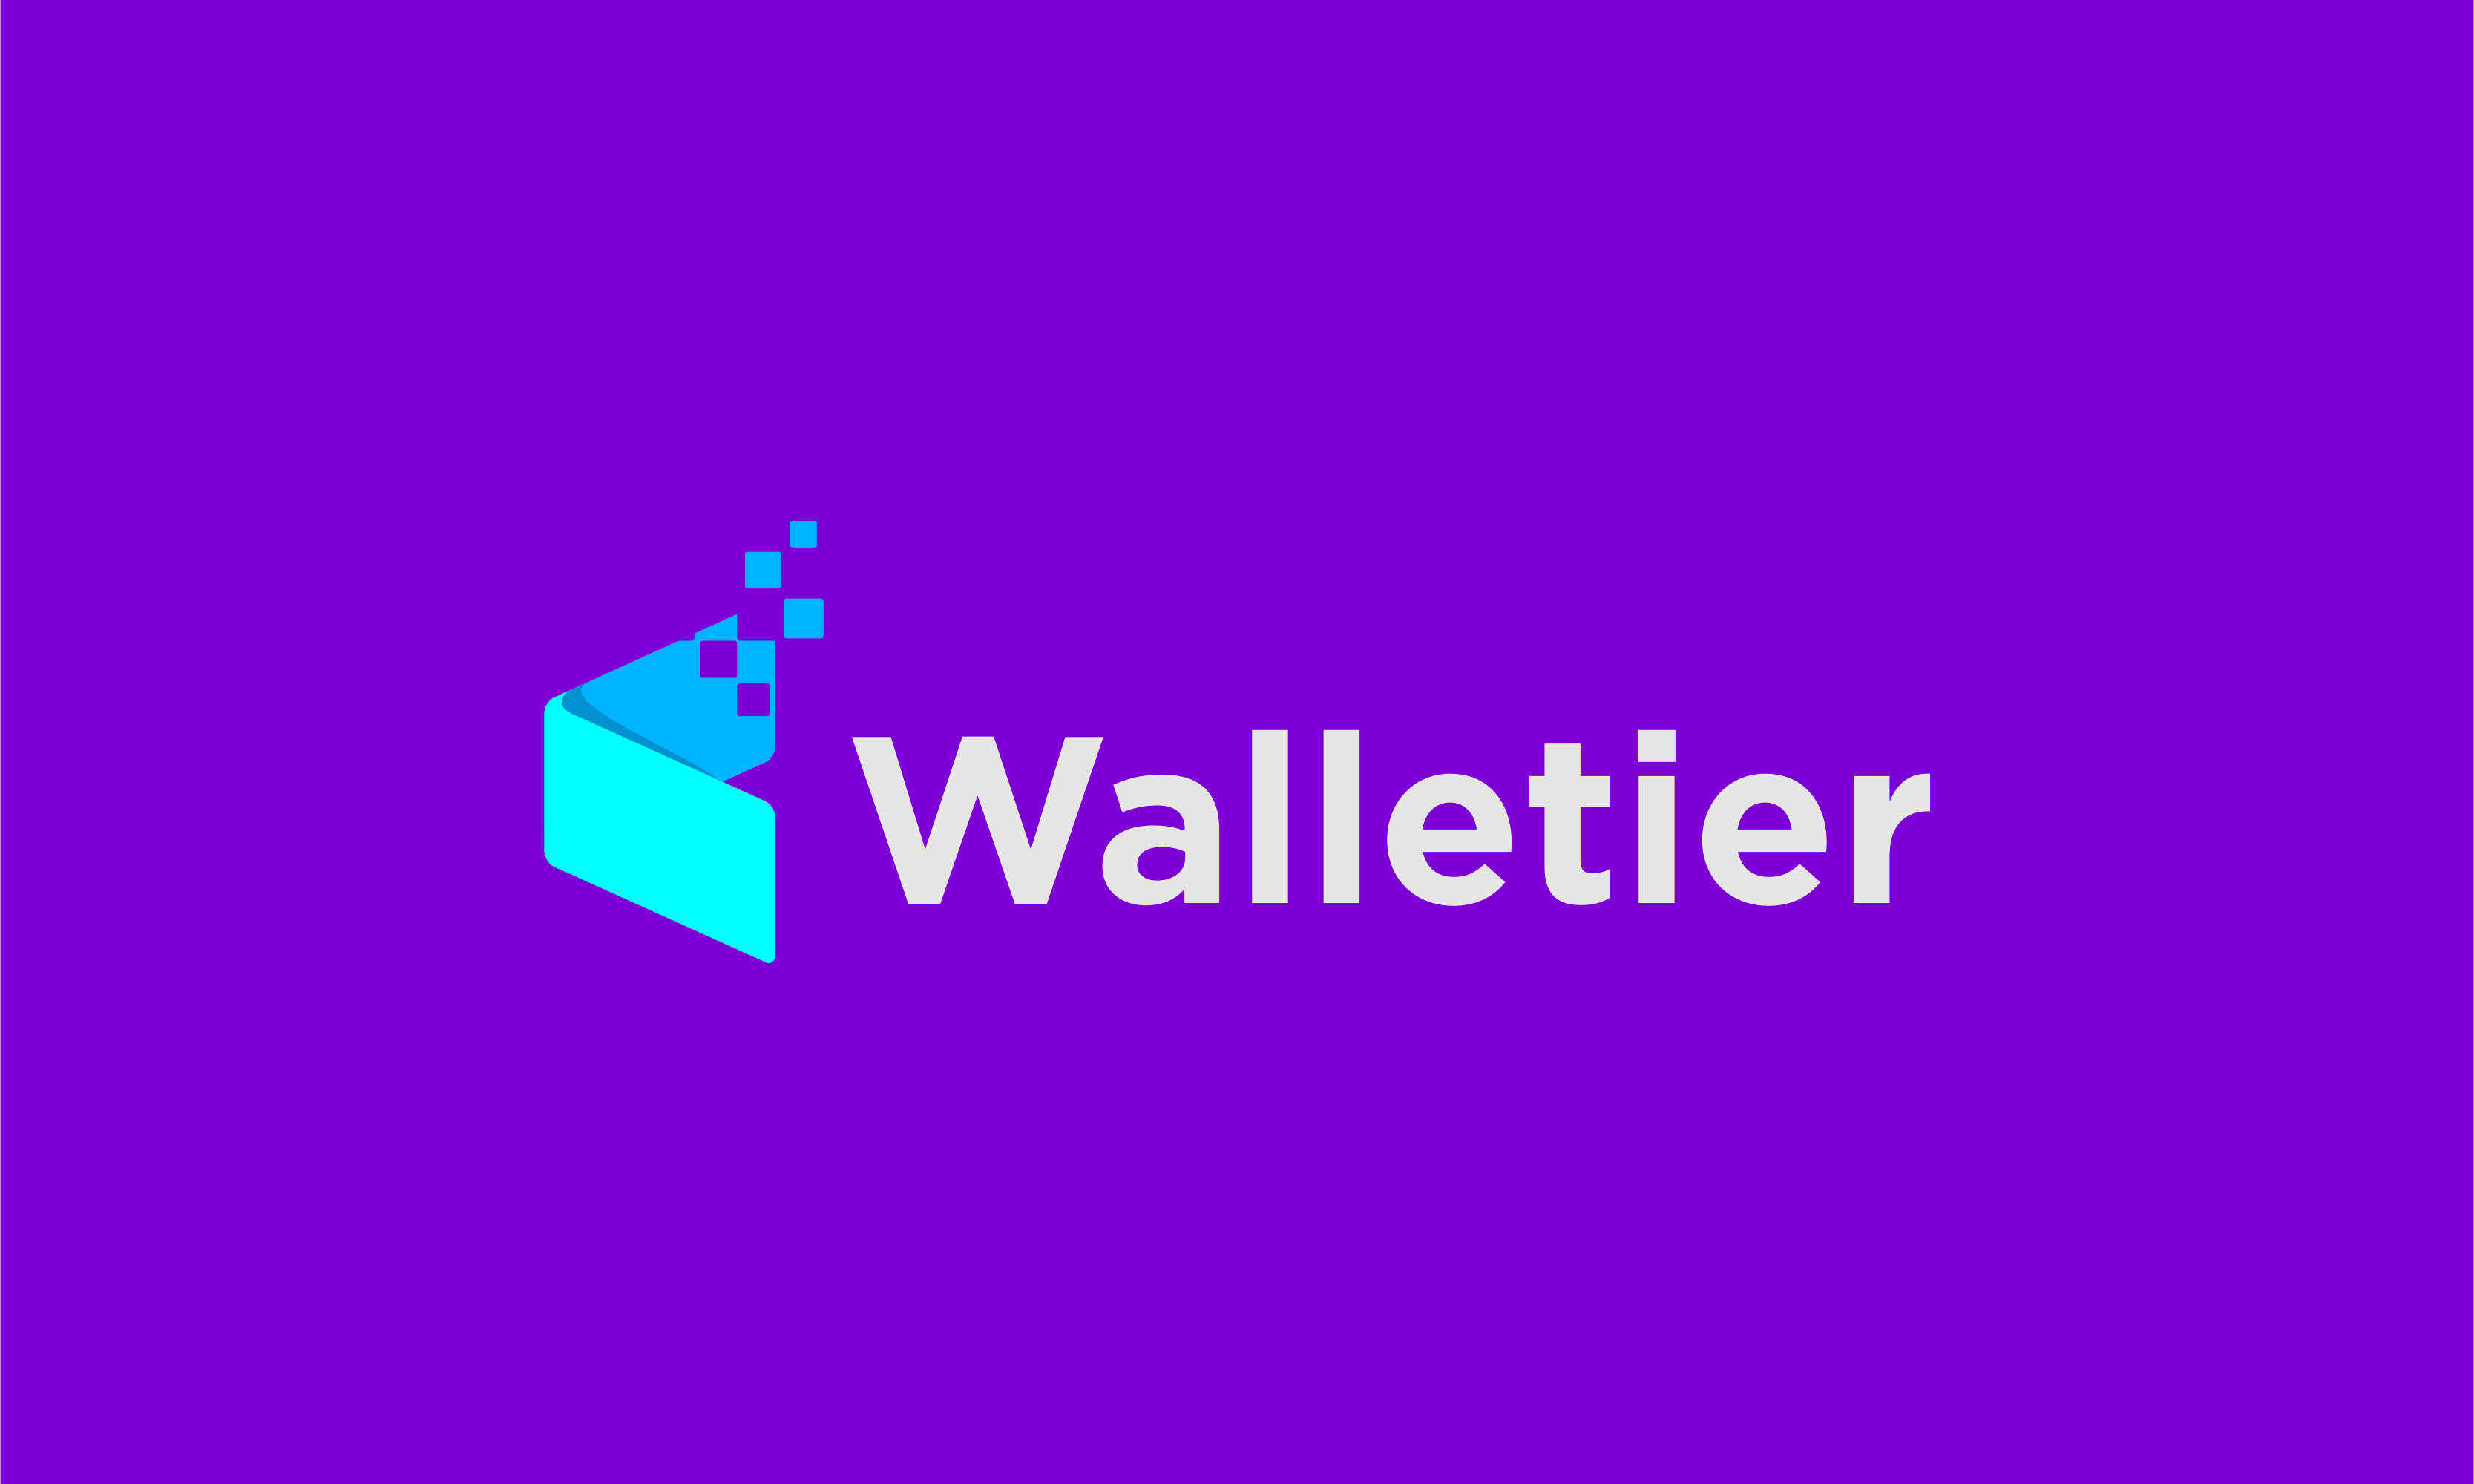 Walletier